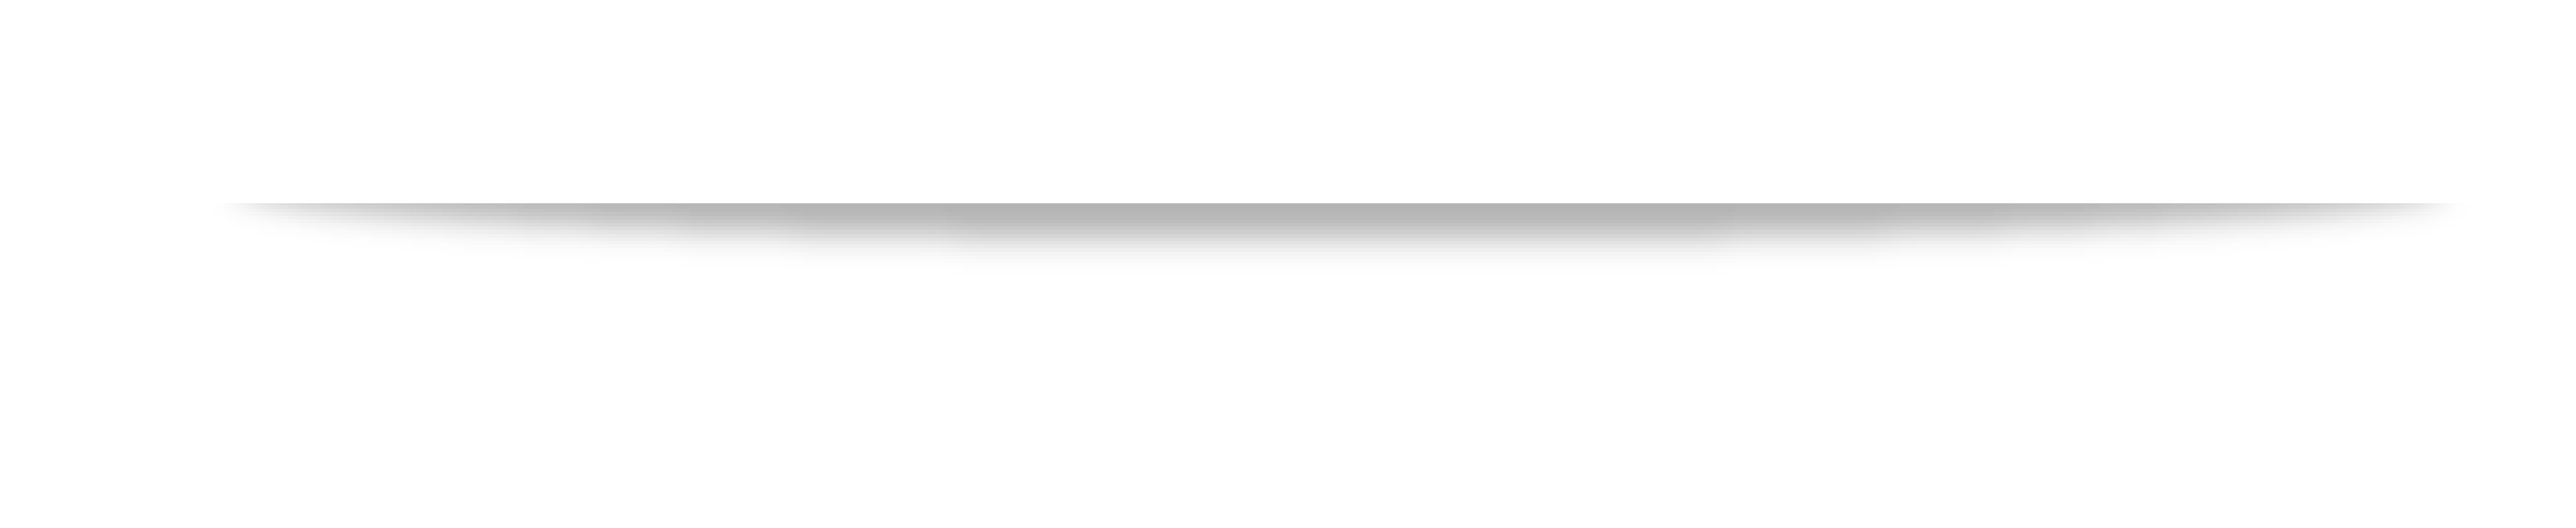 Divider image. Line png jpg black and white stock